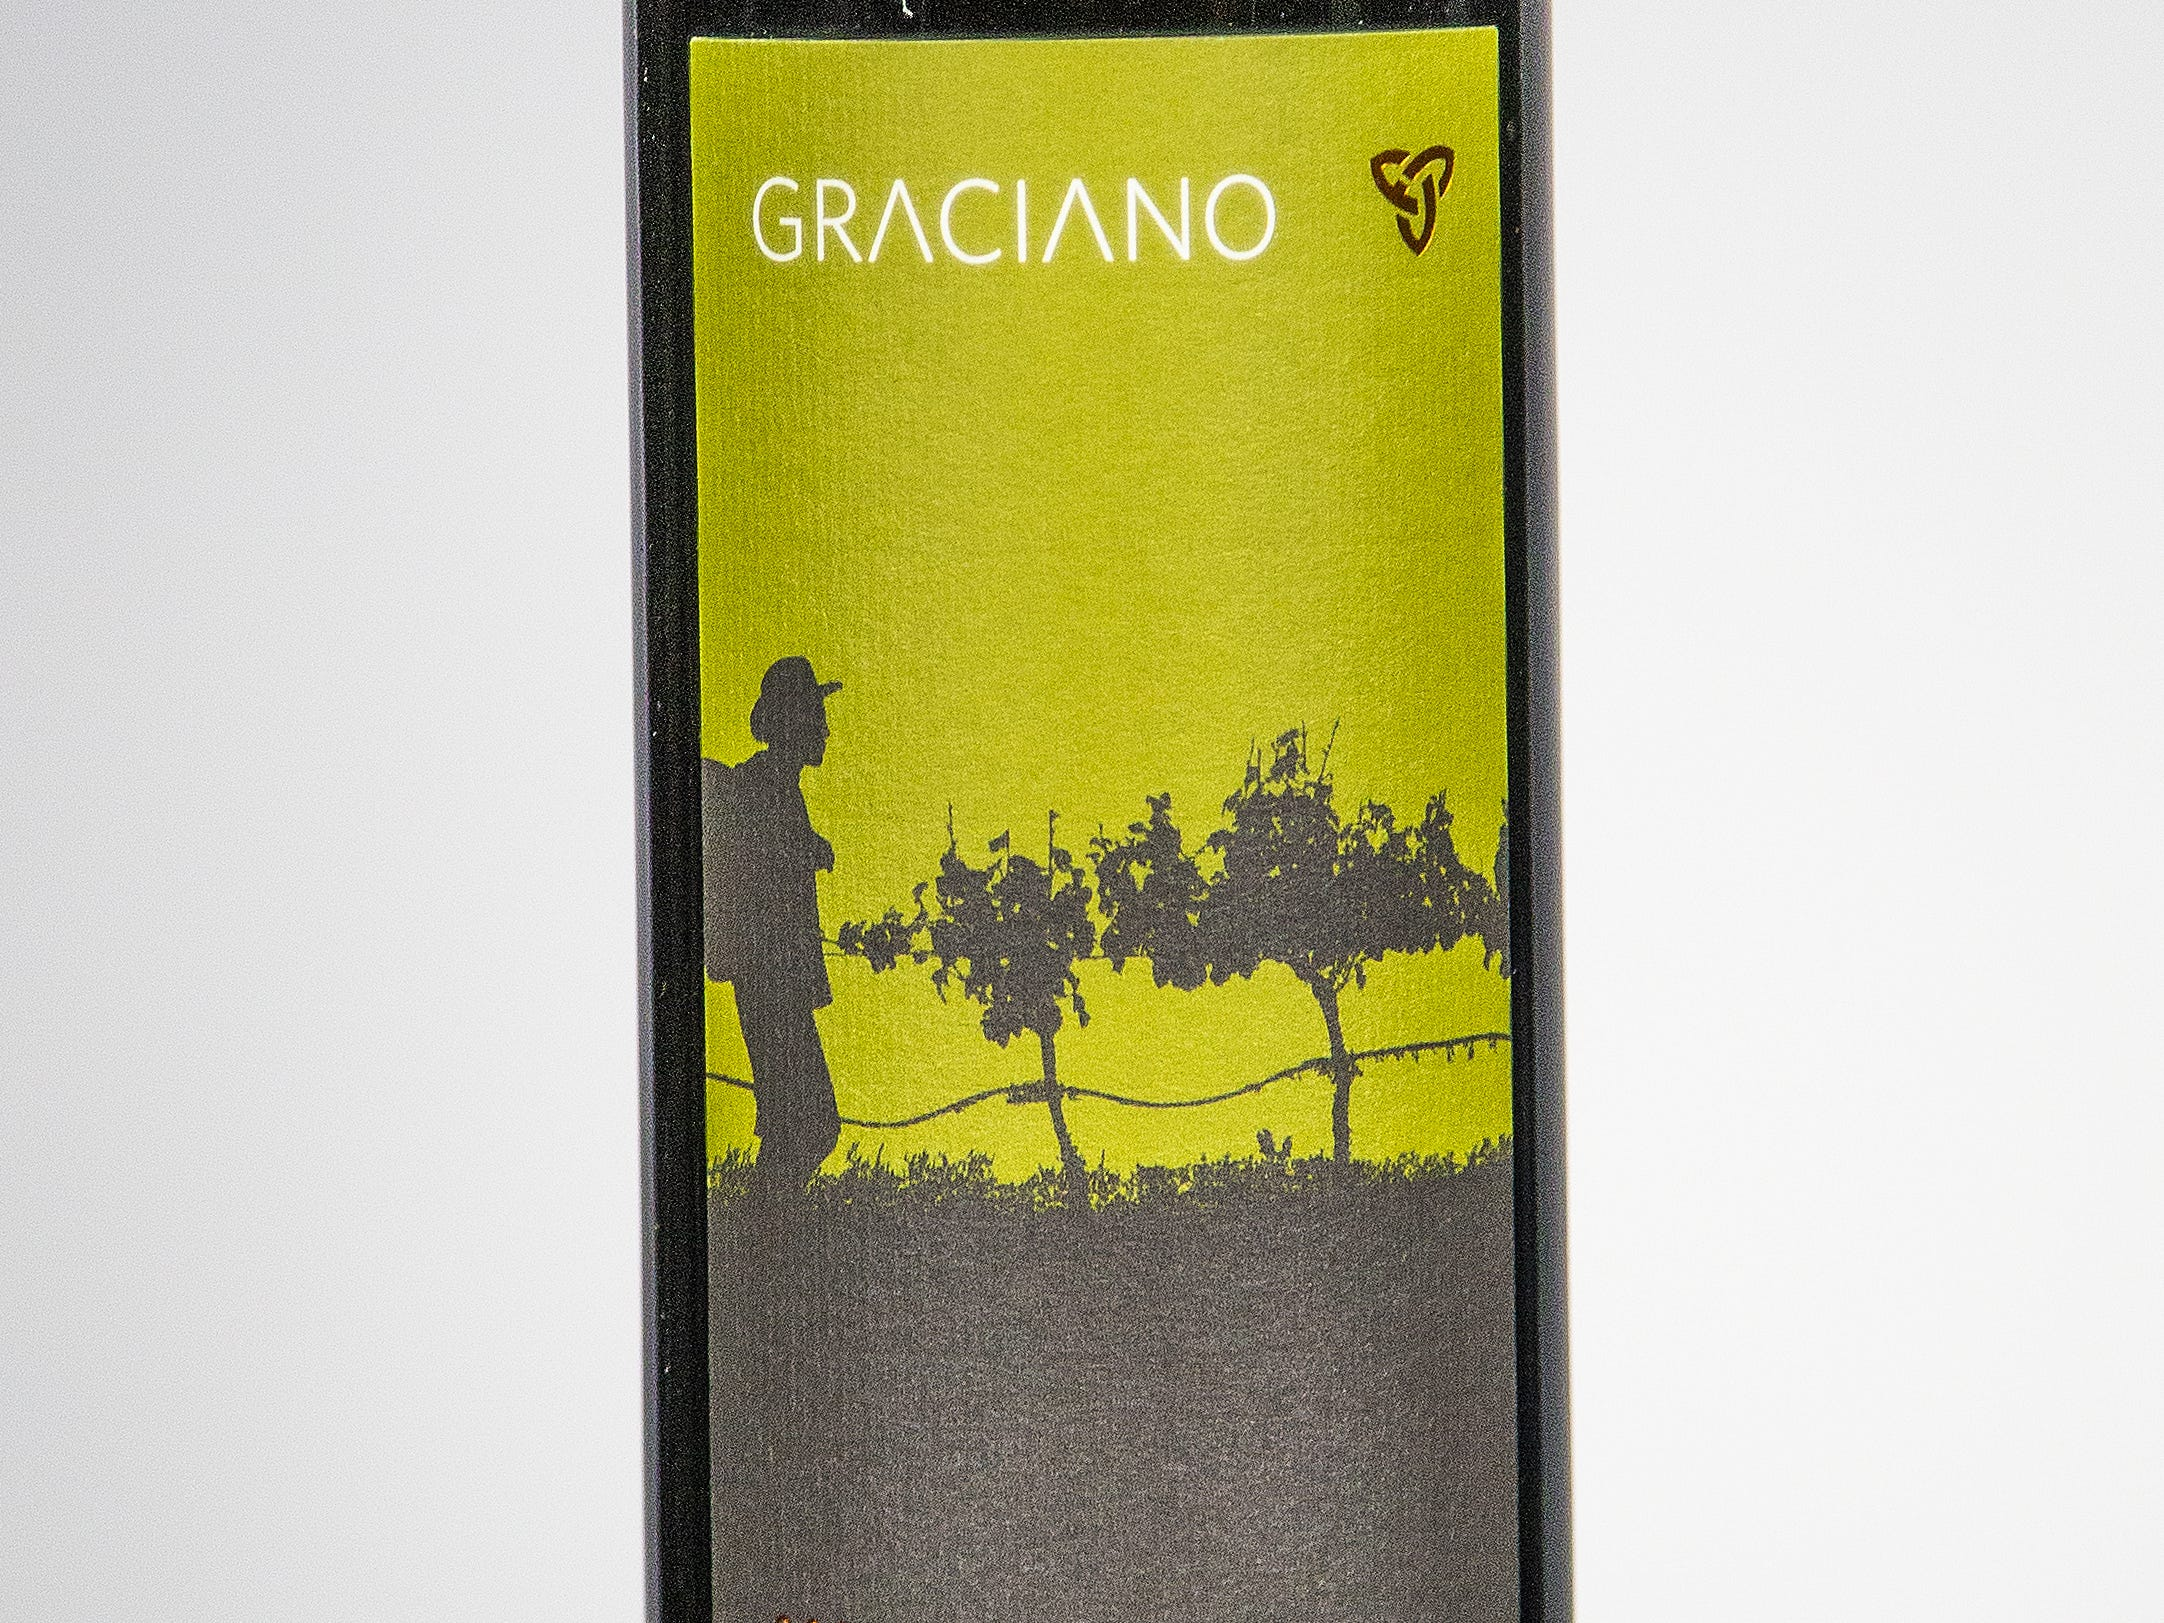 Best Graciano: Flying Leap Vineyards & Distillery Graciano 2016.